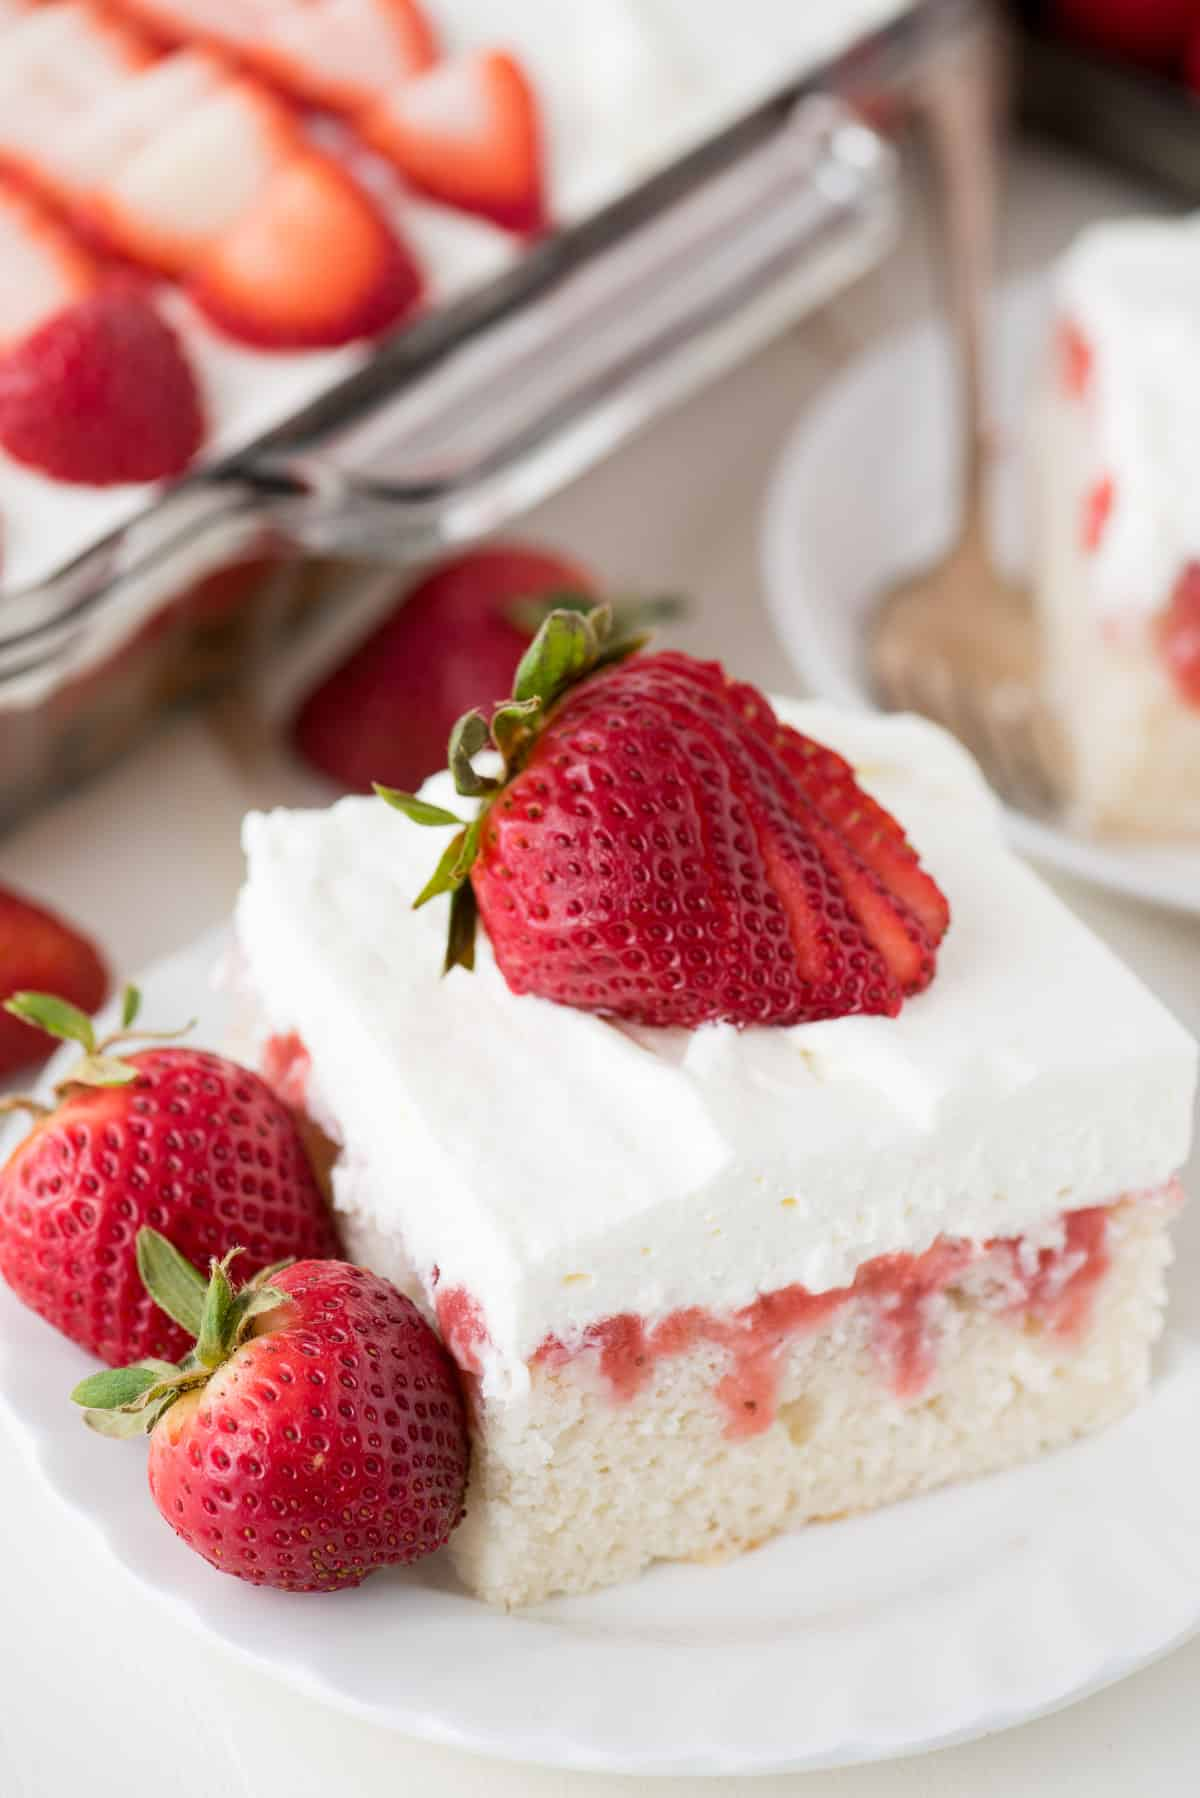 strawberry poke cake with whipped cream topping on white plate